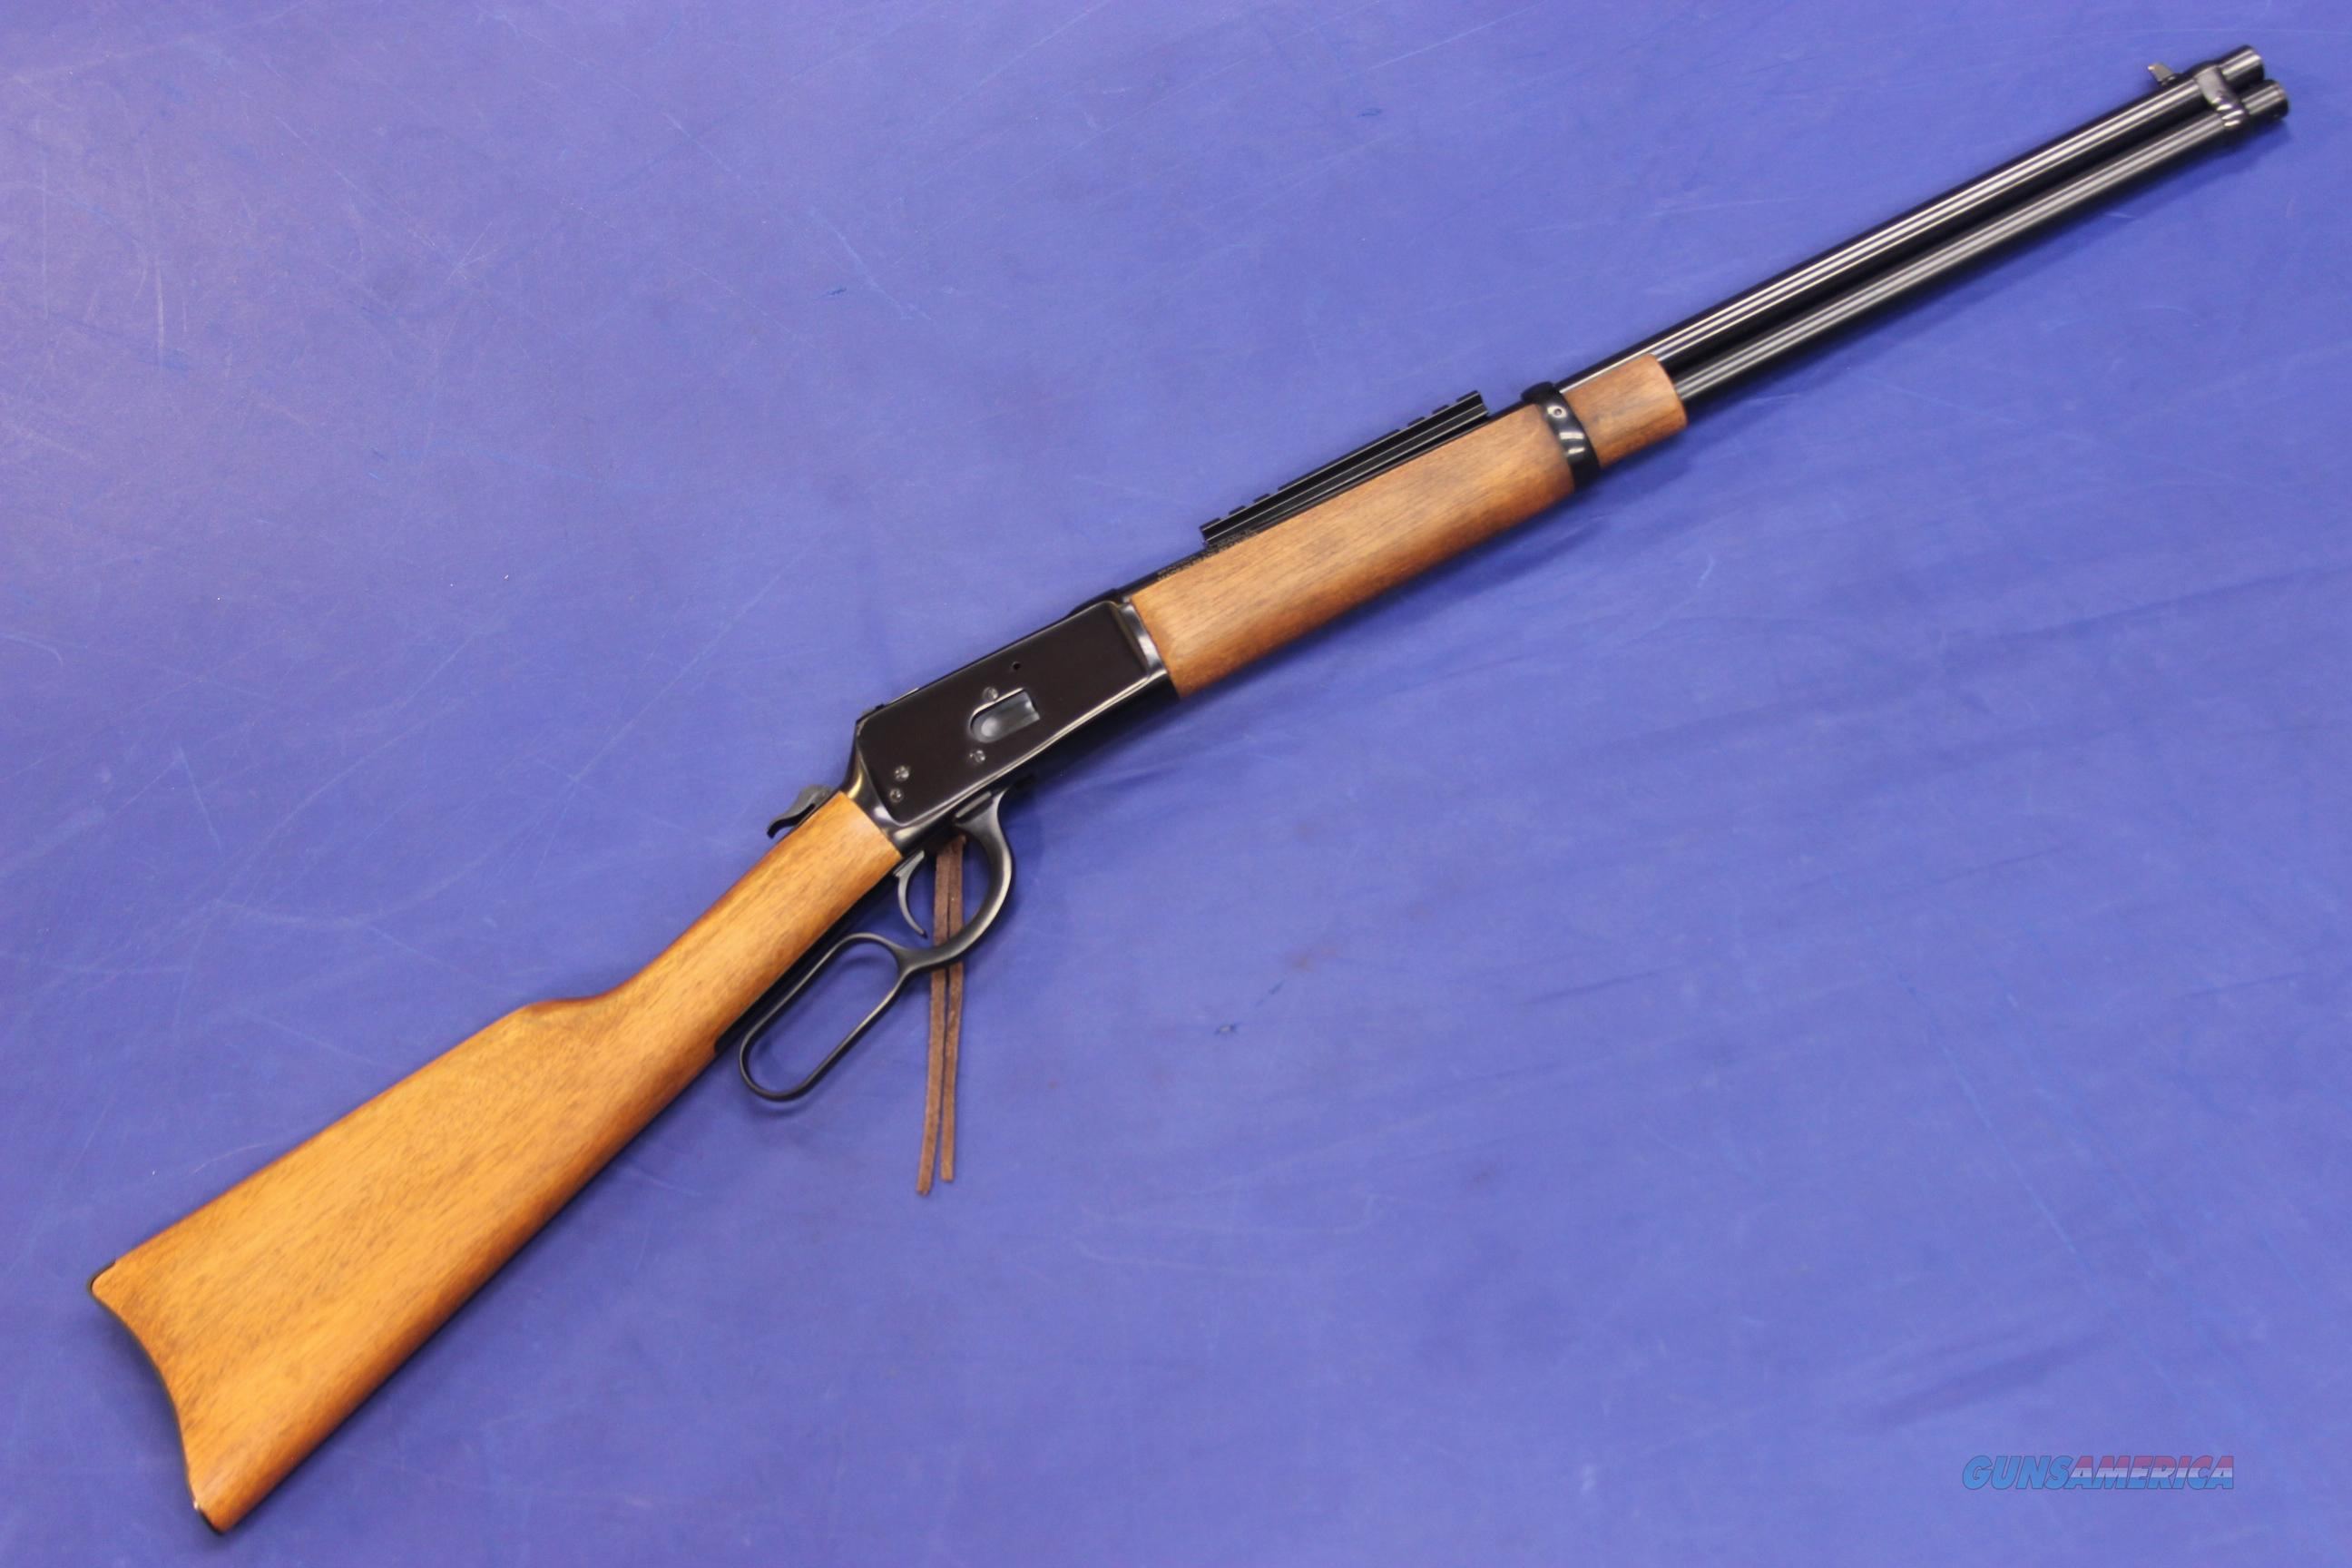 ROSSI 92 CARBINE .44 MAGNUM - NEW!   Guns > Rifles > Rossi Rifles > Other